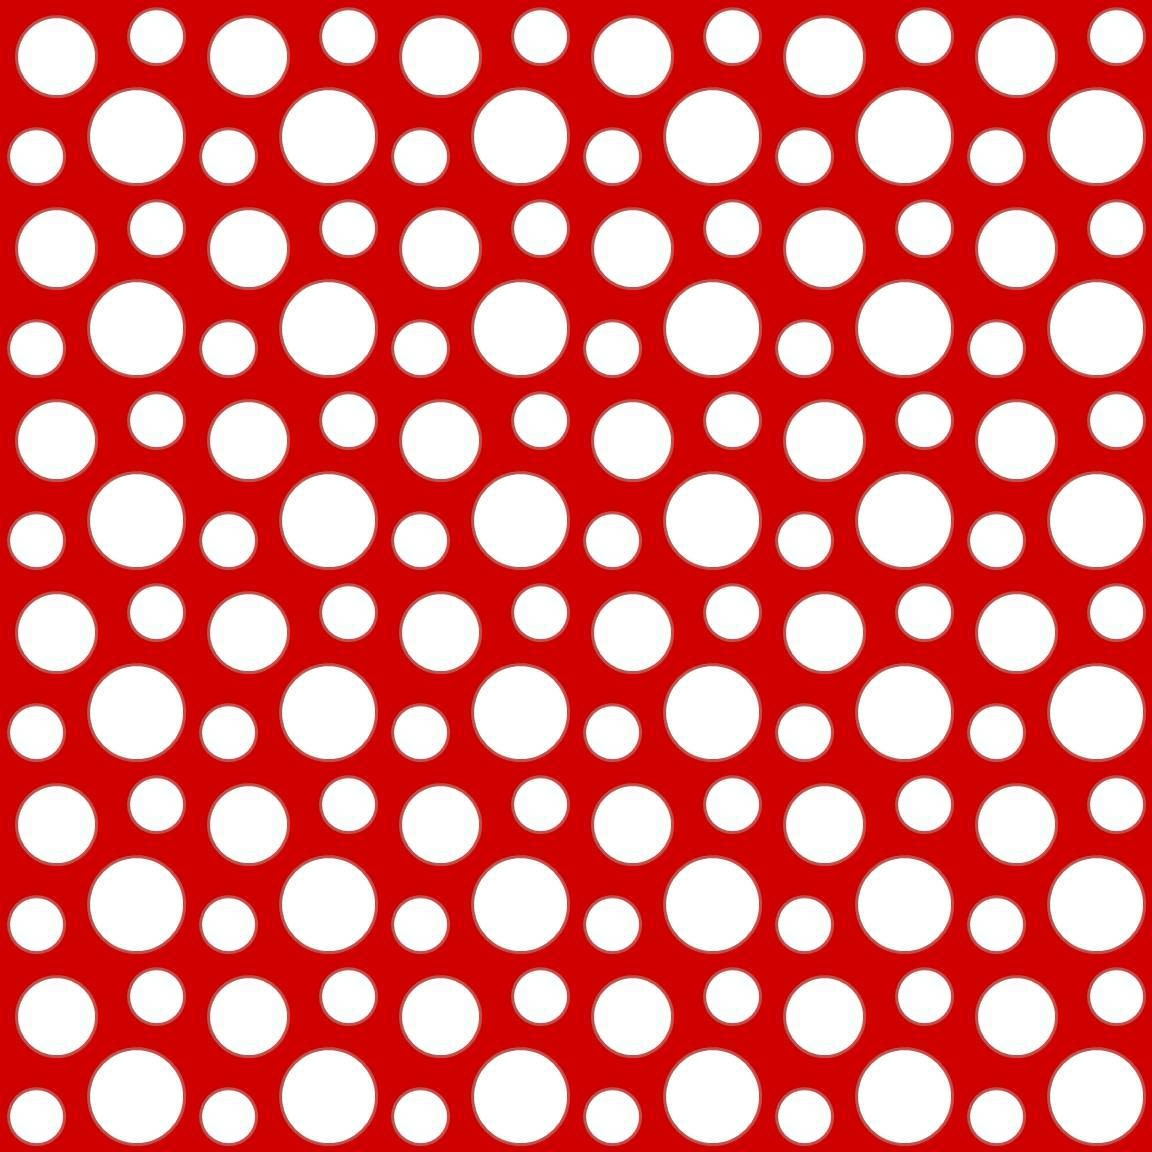 Free Red Polka Dot Border Free, Download Free Clip Art, Free Clip - Free Printable Christmas Bulletin Board Borders